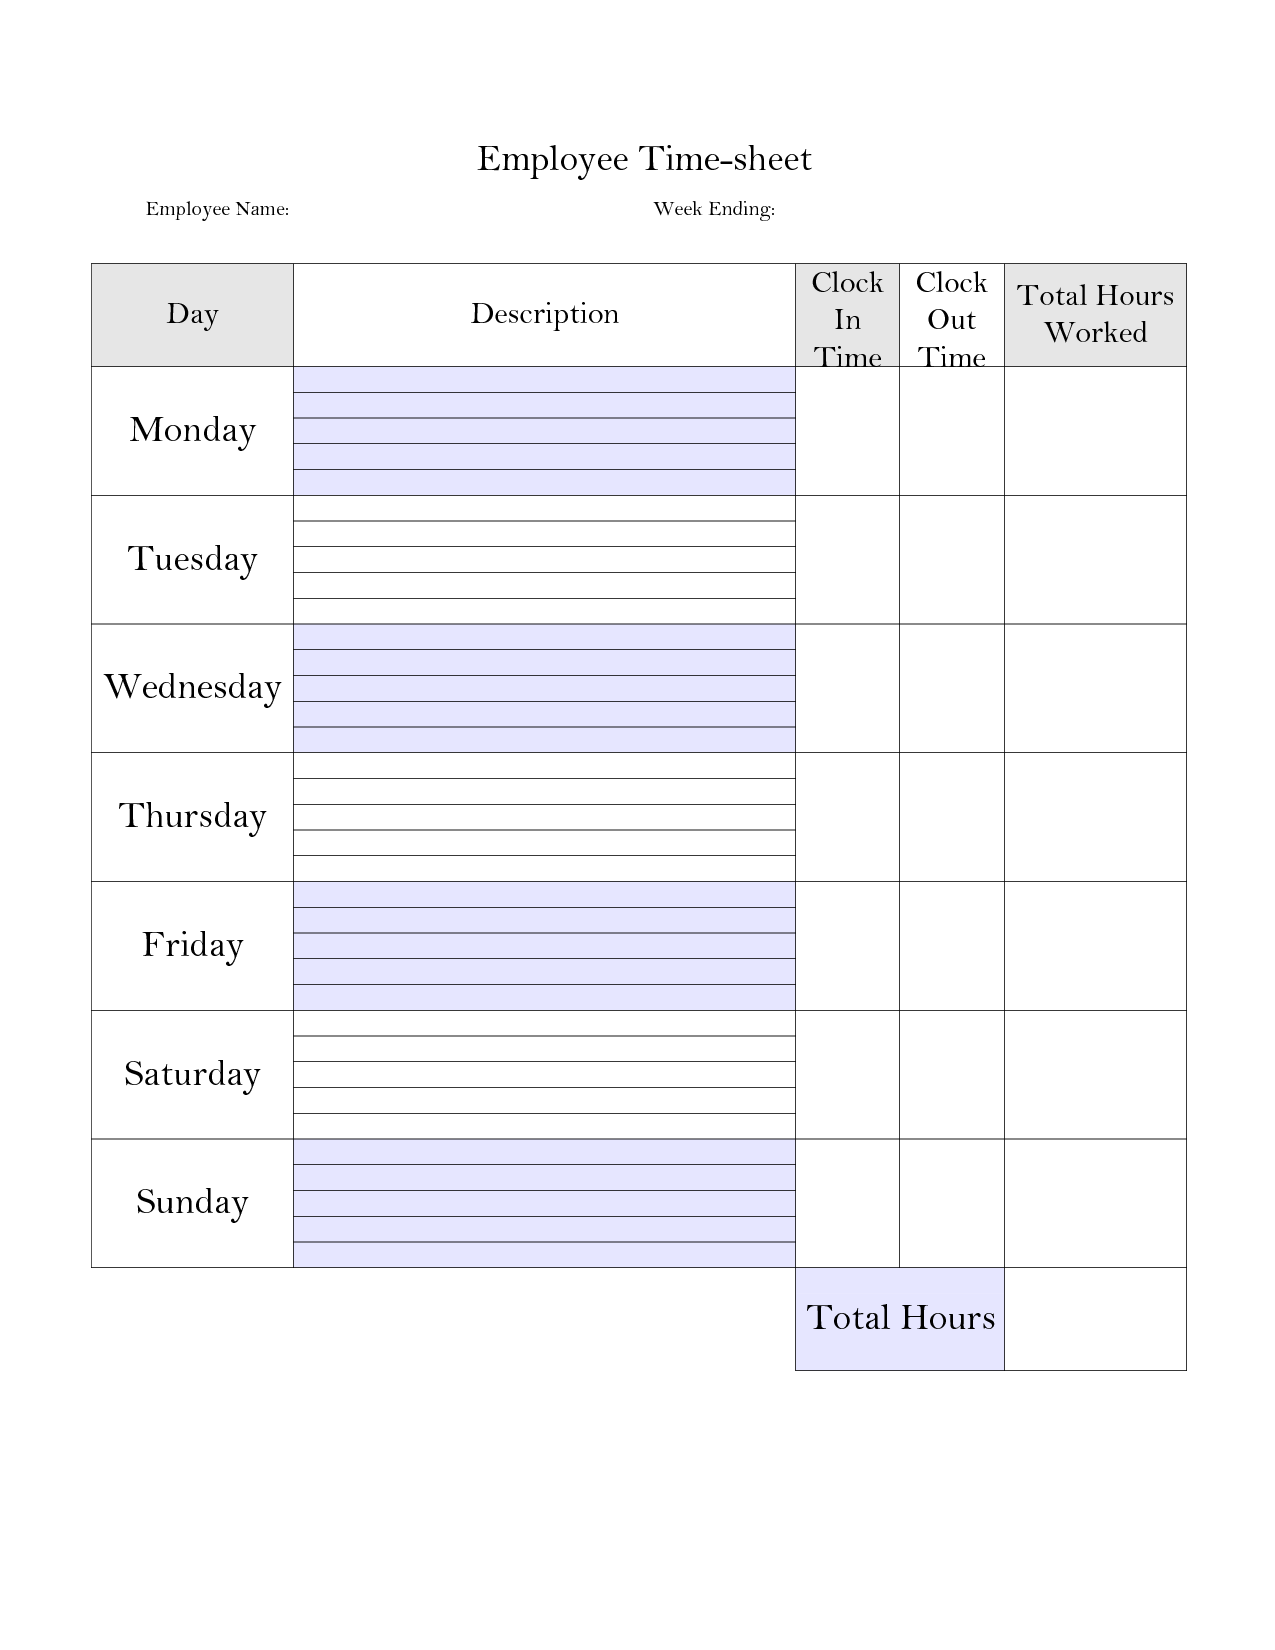 Worksheets Timesheet Worksheet printable weekly time sheet timecard sheets timecard